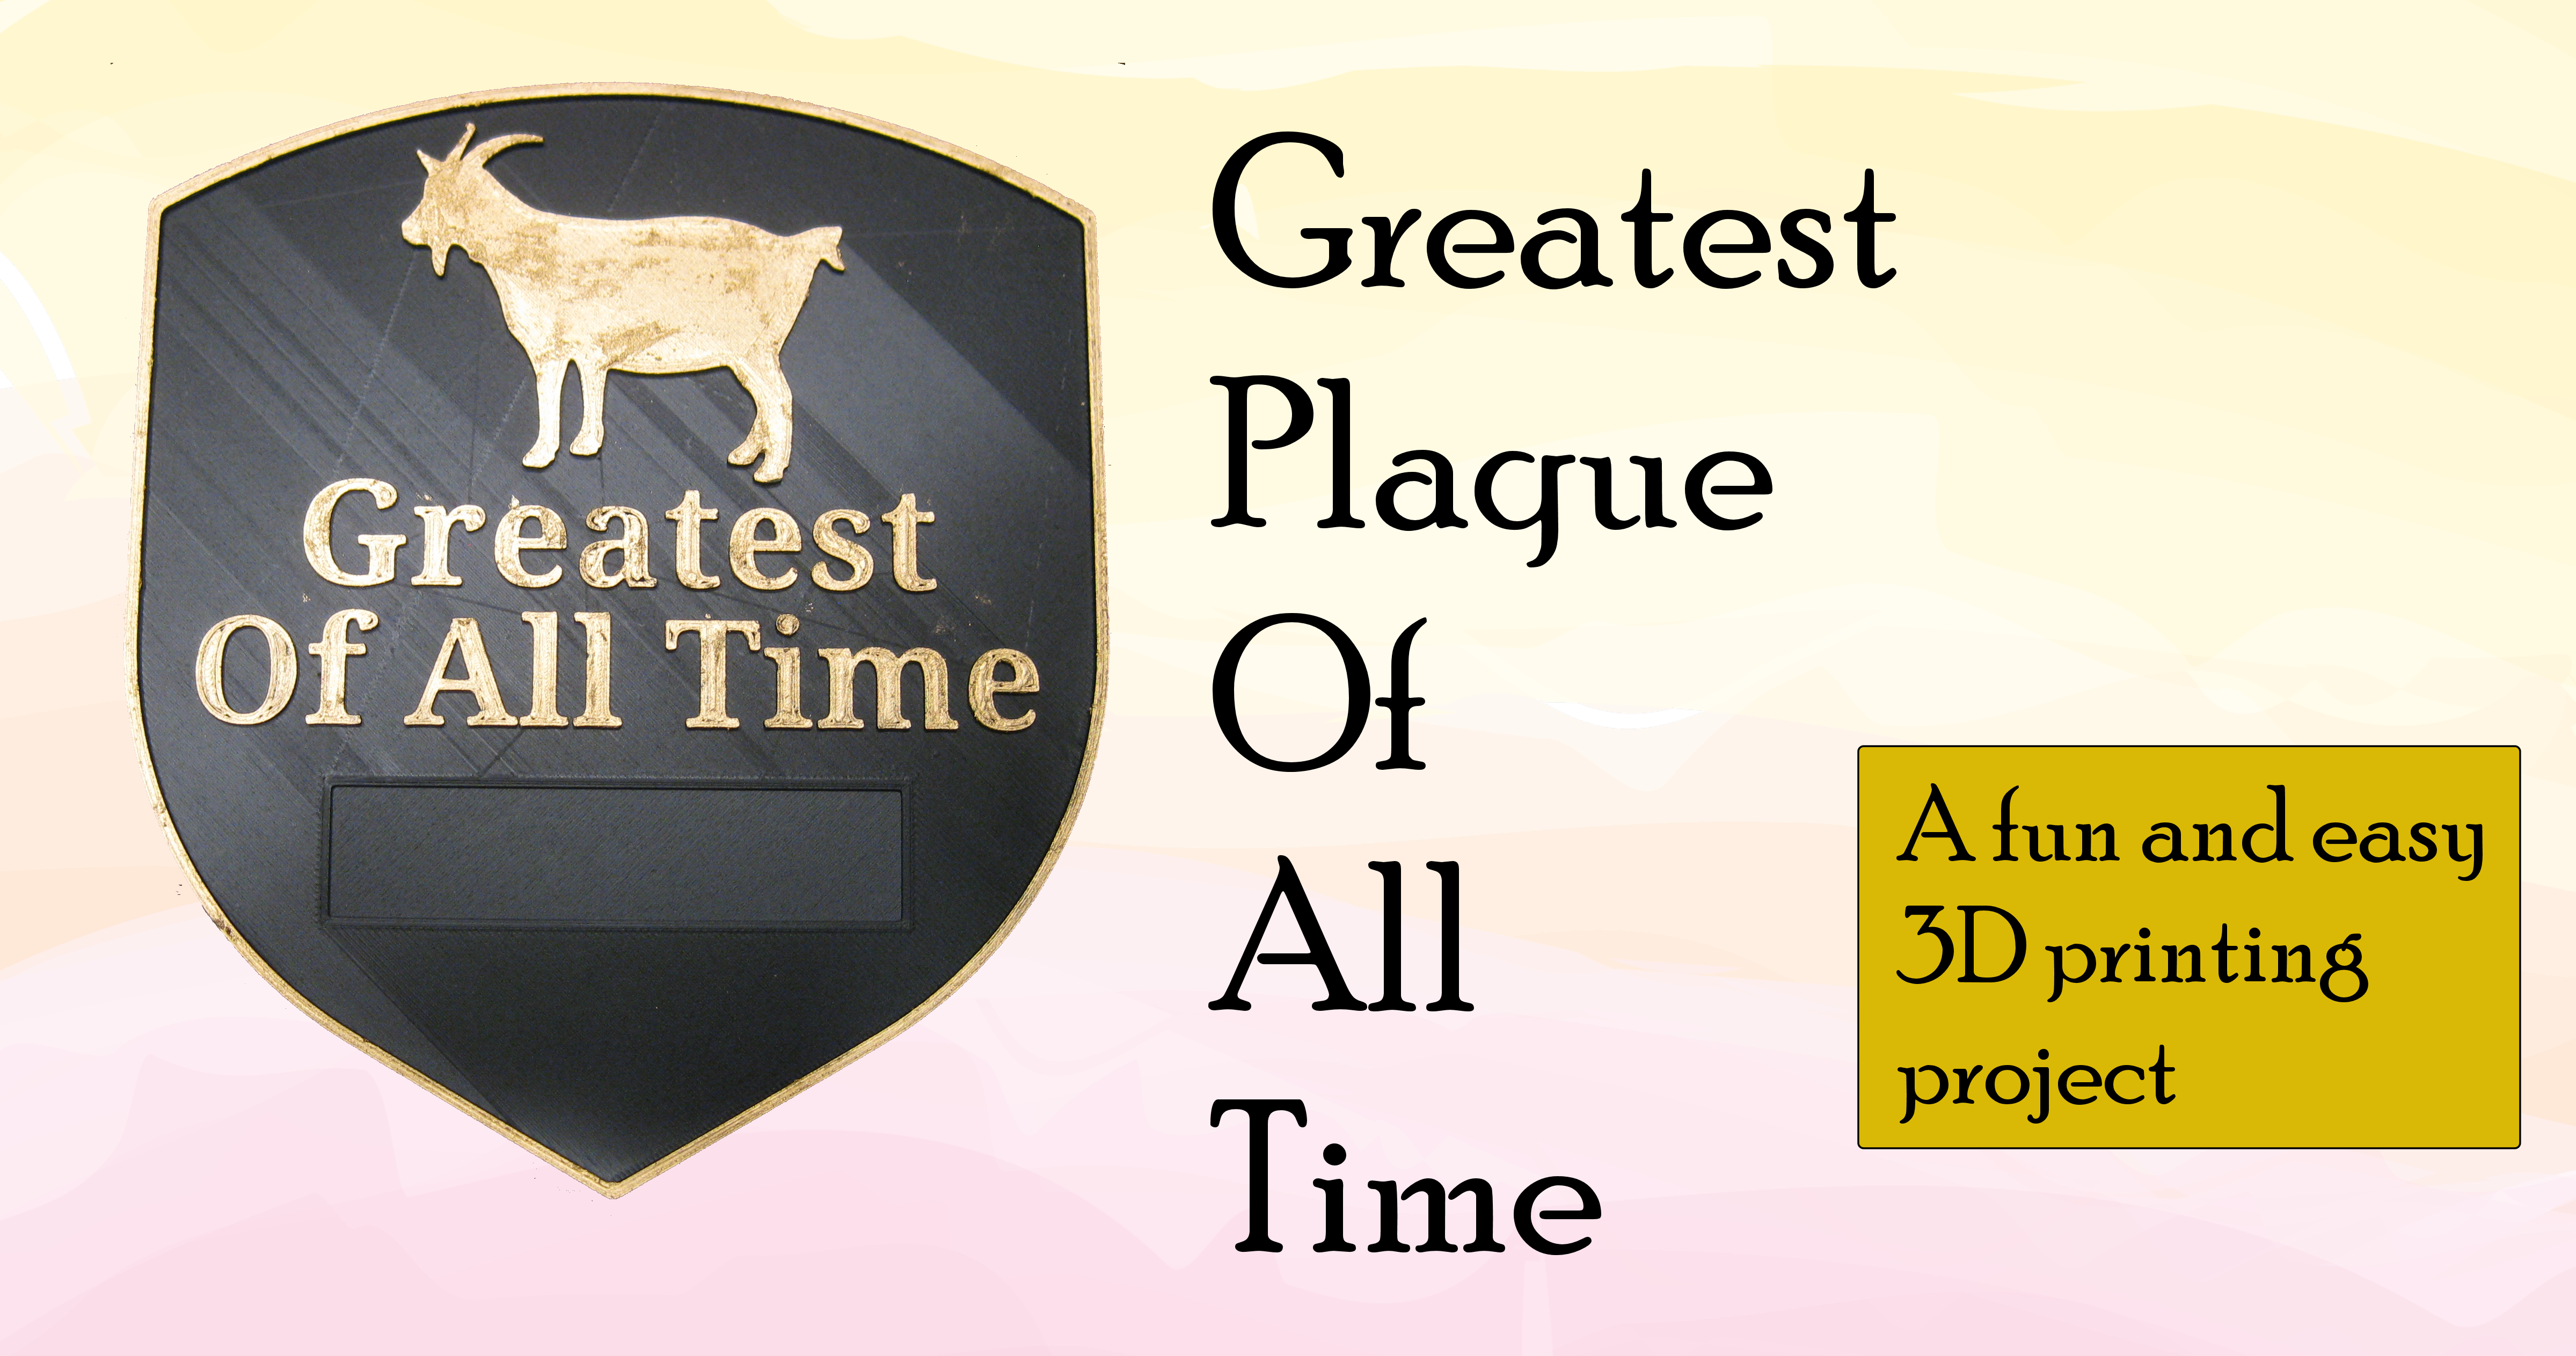 Unique 3D print project: The Greatest Plaque of All Time